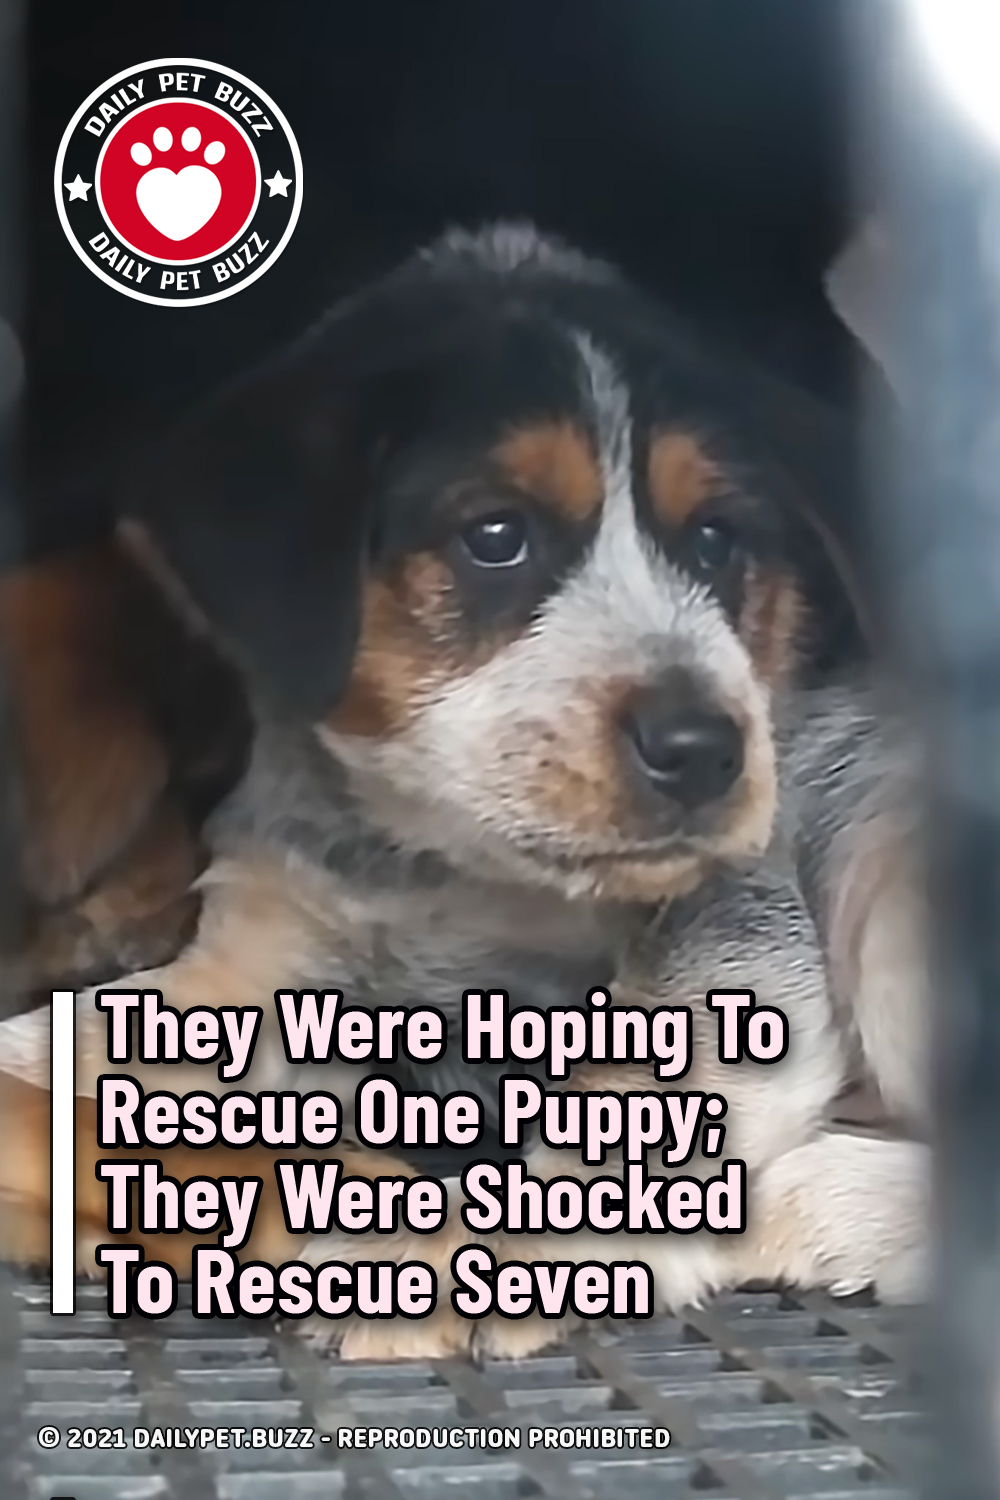 They Were Hoping To Rescue One Puppy; They Were Shocked To Rescue Seven